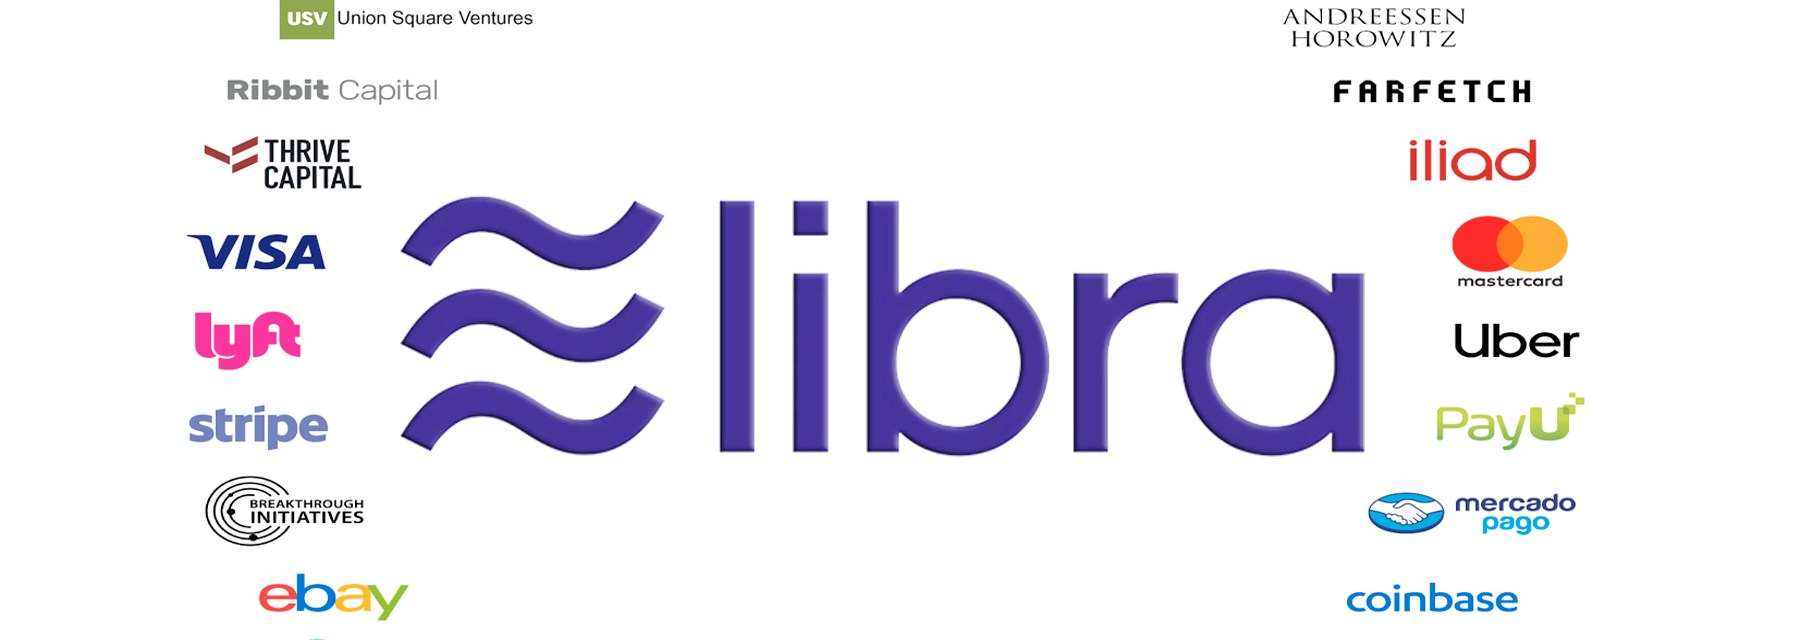 Facebook says it will launch a new cryptocurrency called Libra and a digital wallet called Calibra in 2020